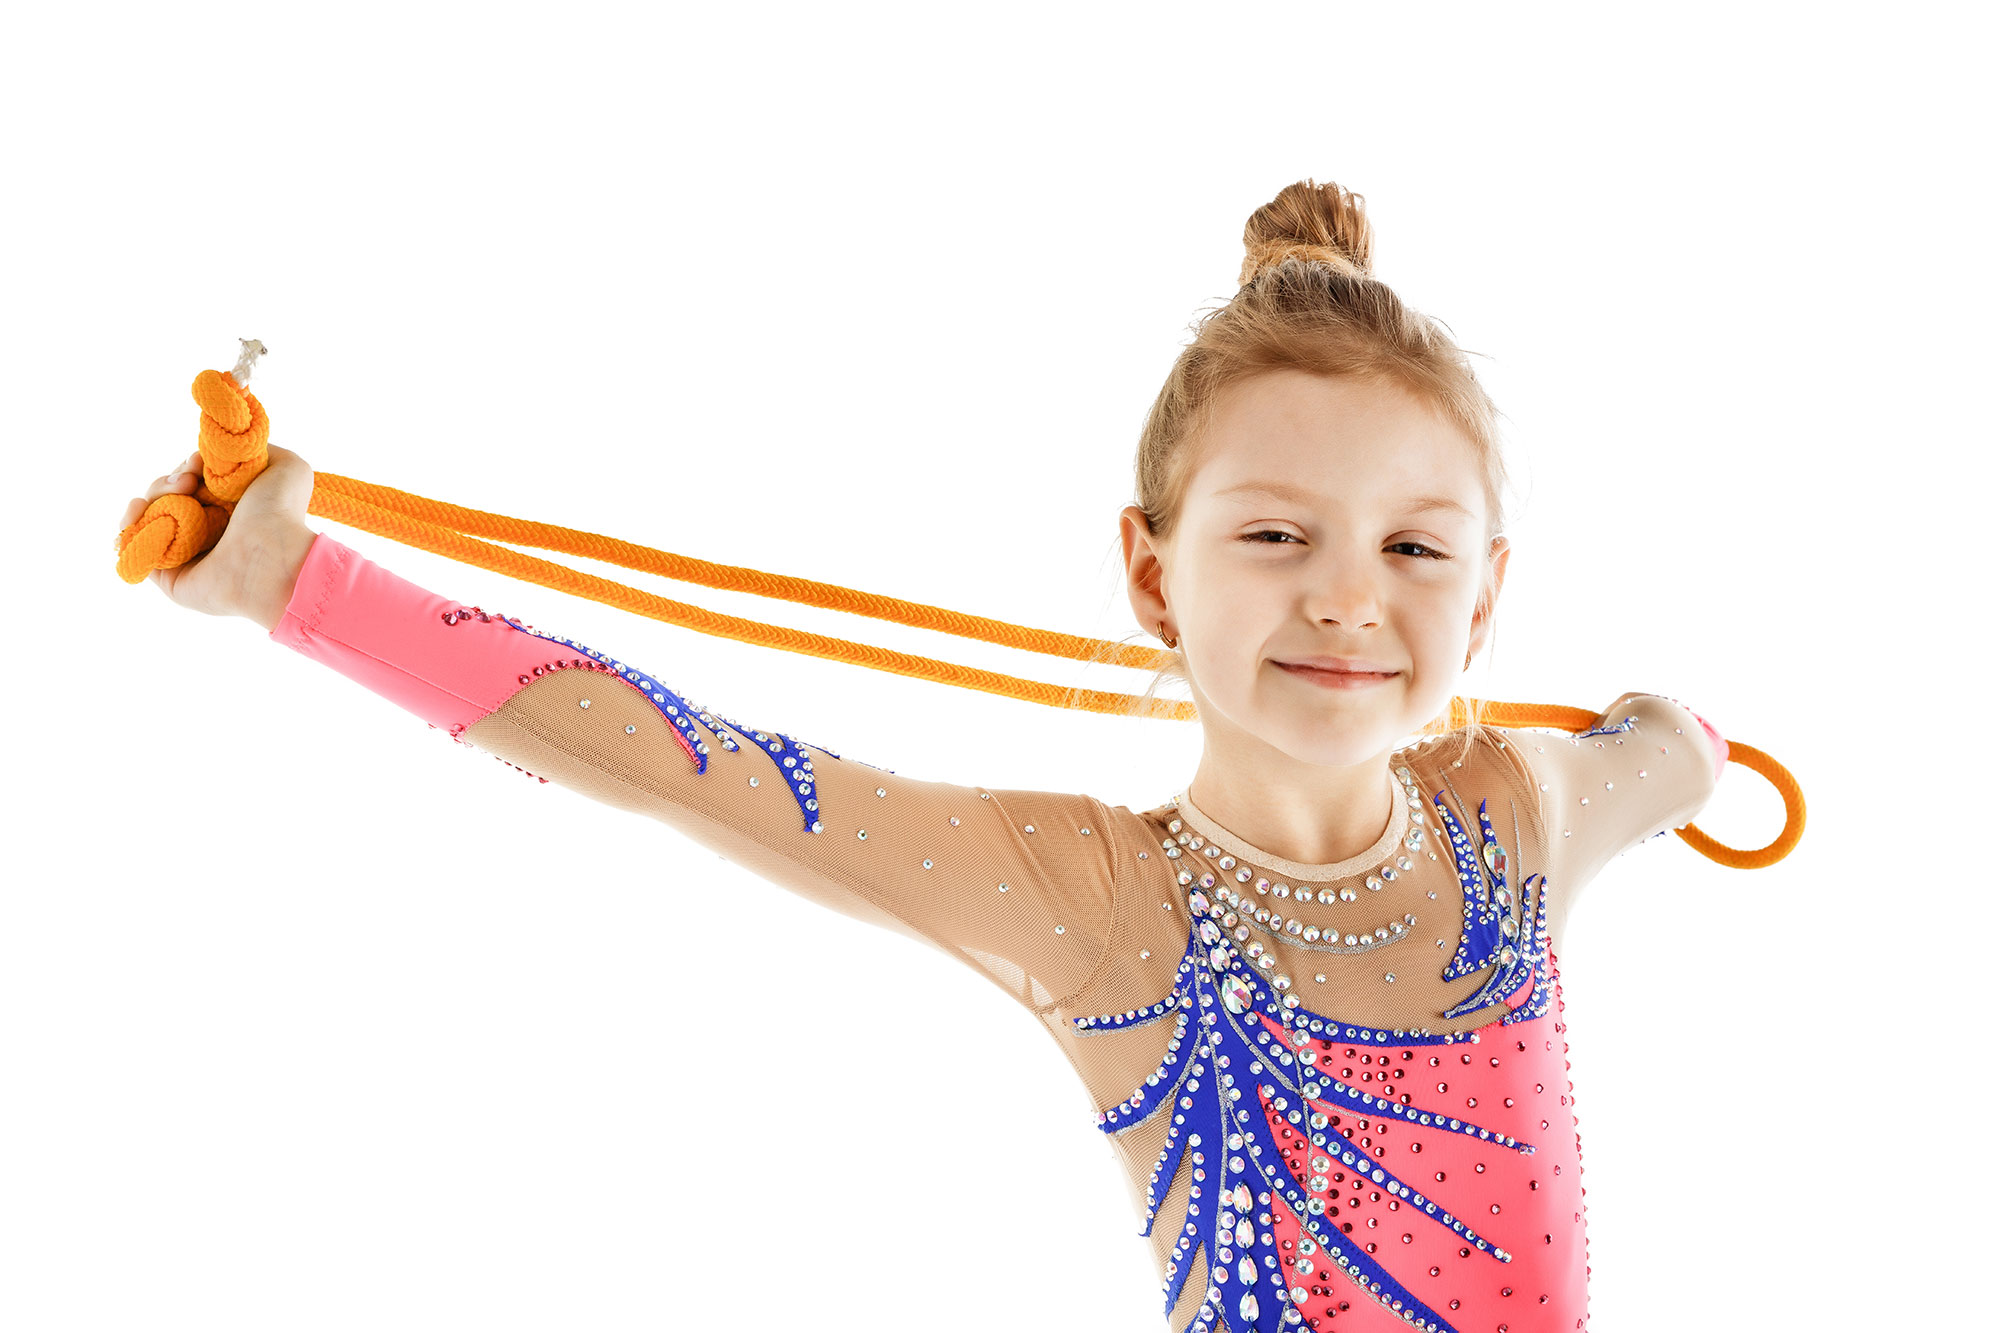 Rhythmic Gymnastics Leotard 202 in coral, blue & mesh colors